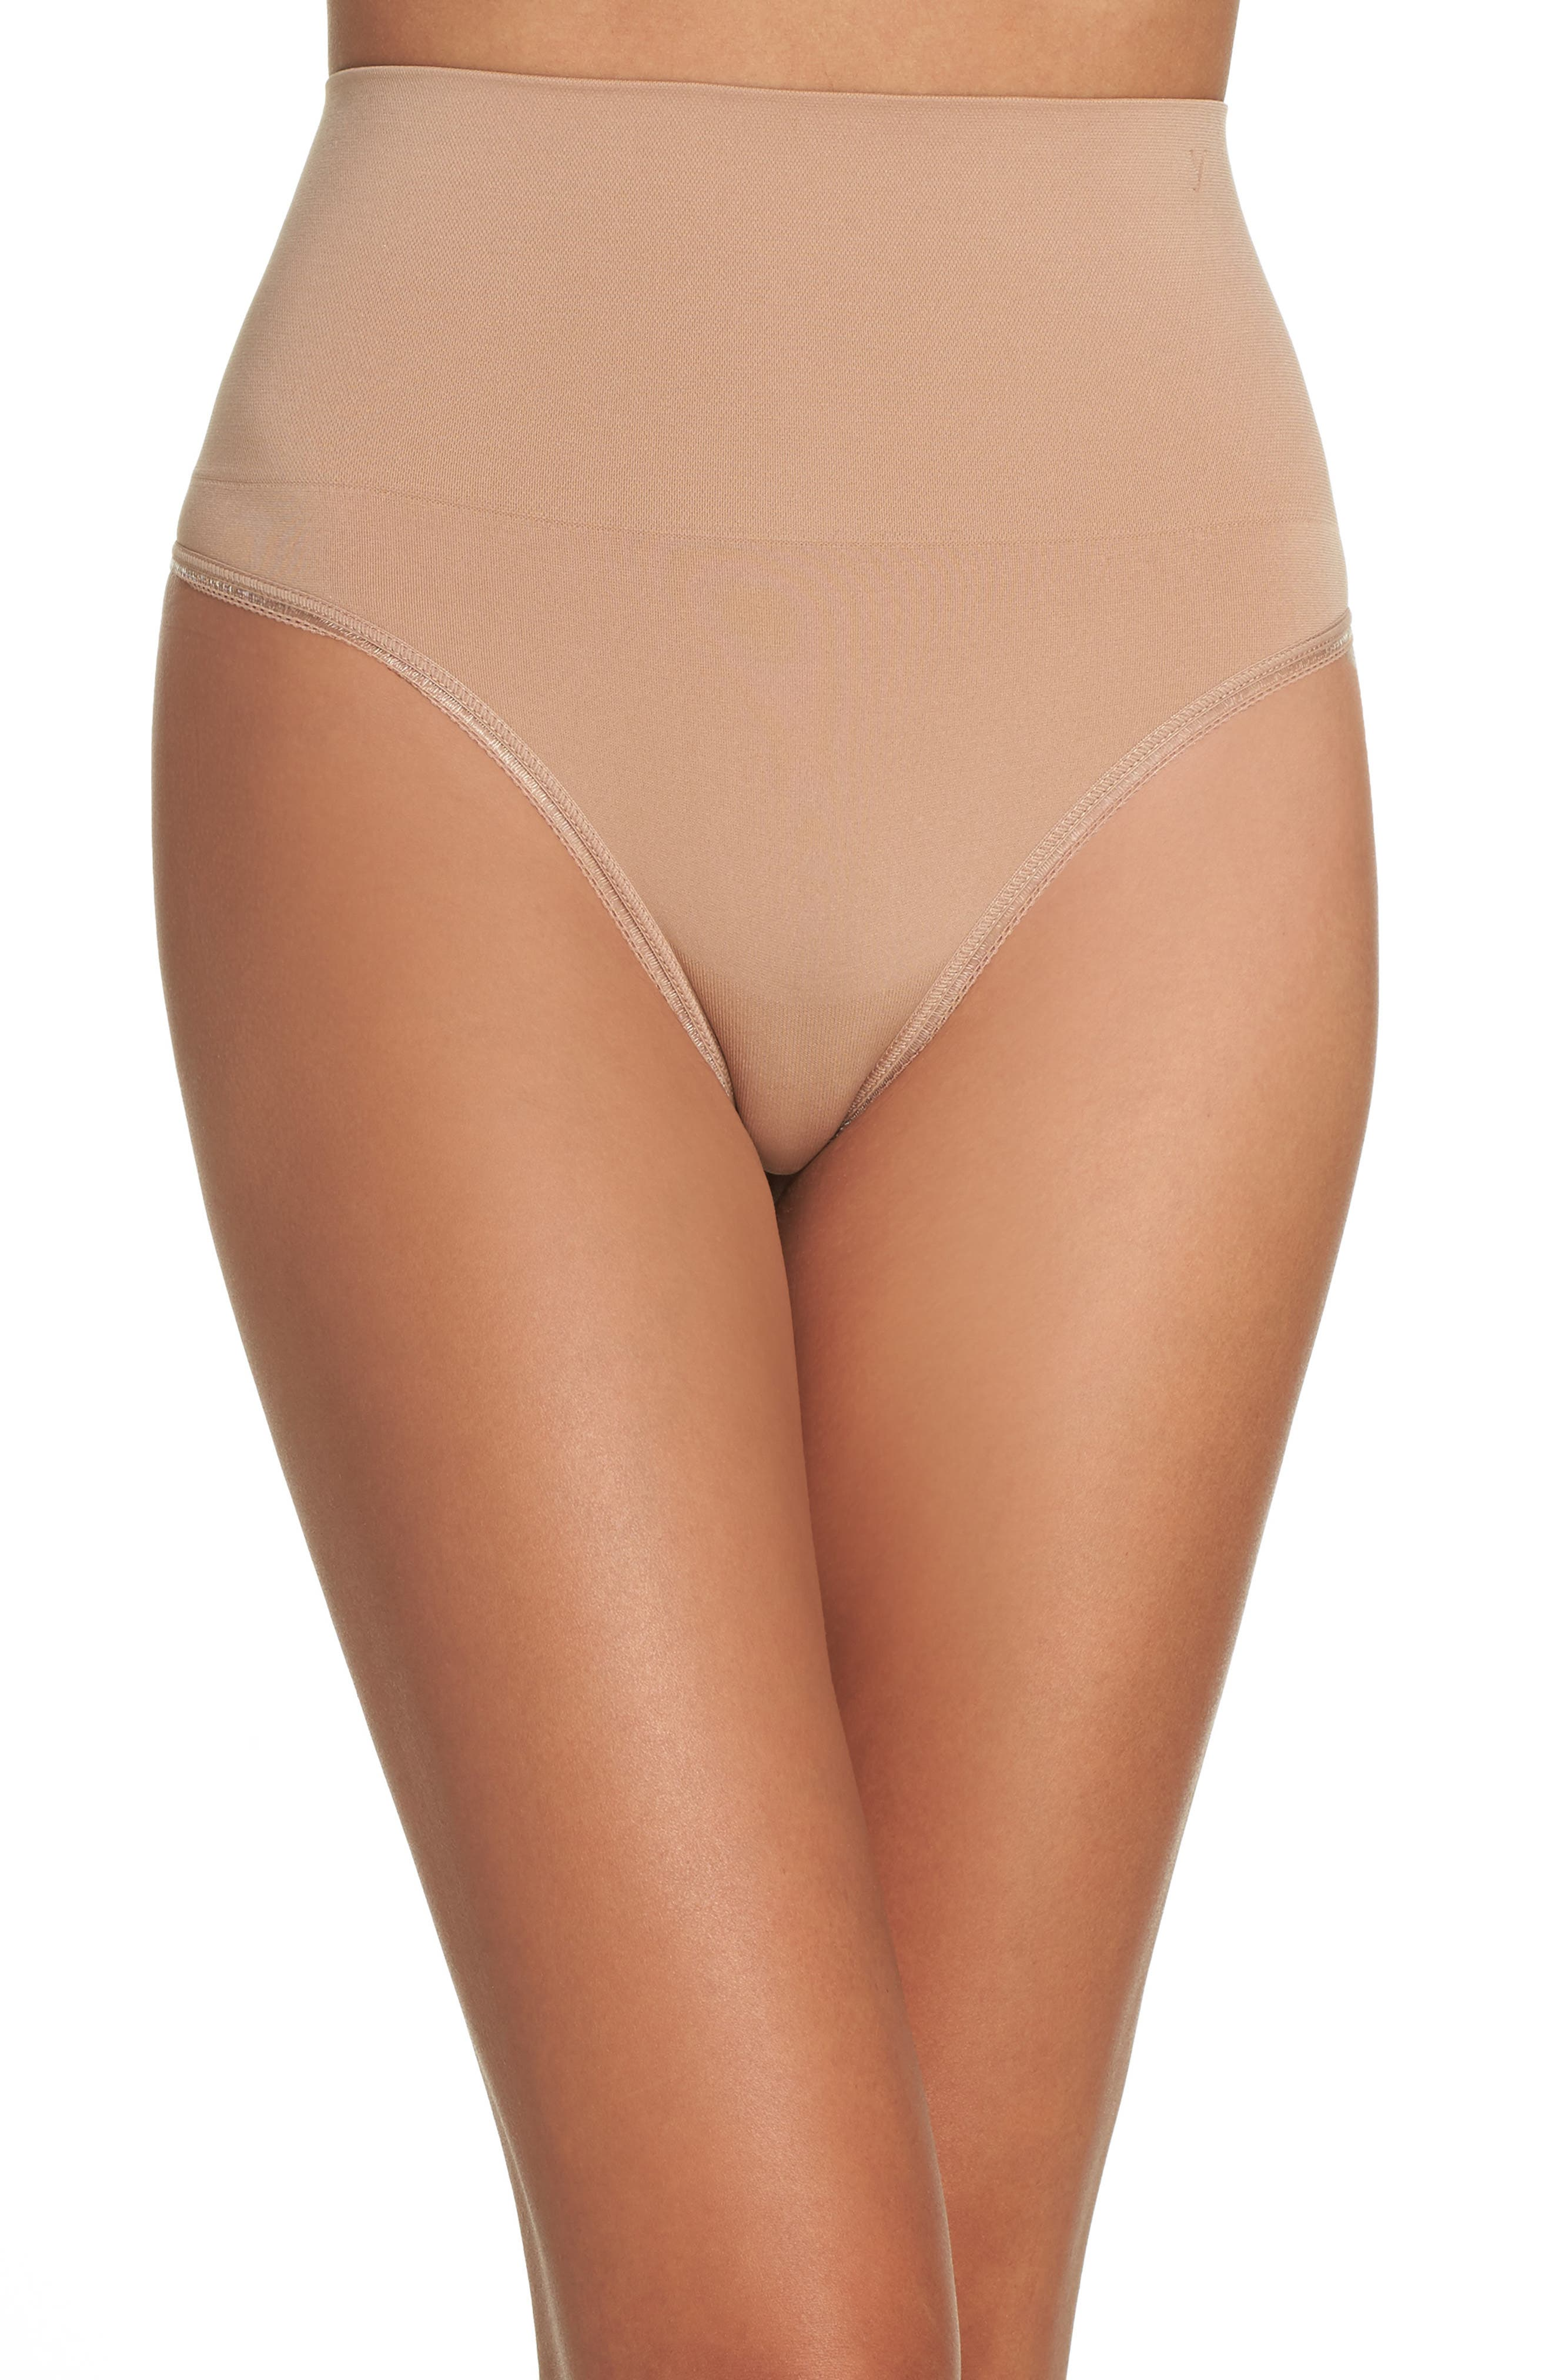 Ultralight Seamless Shaping Thong,                         Main,                         color, Almond